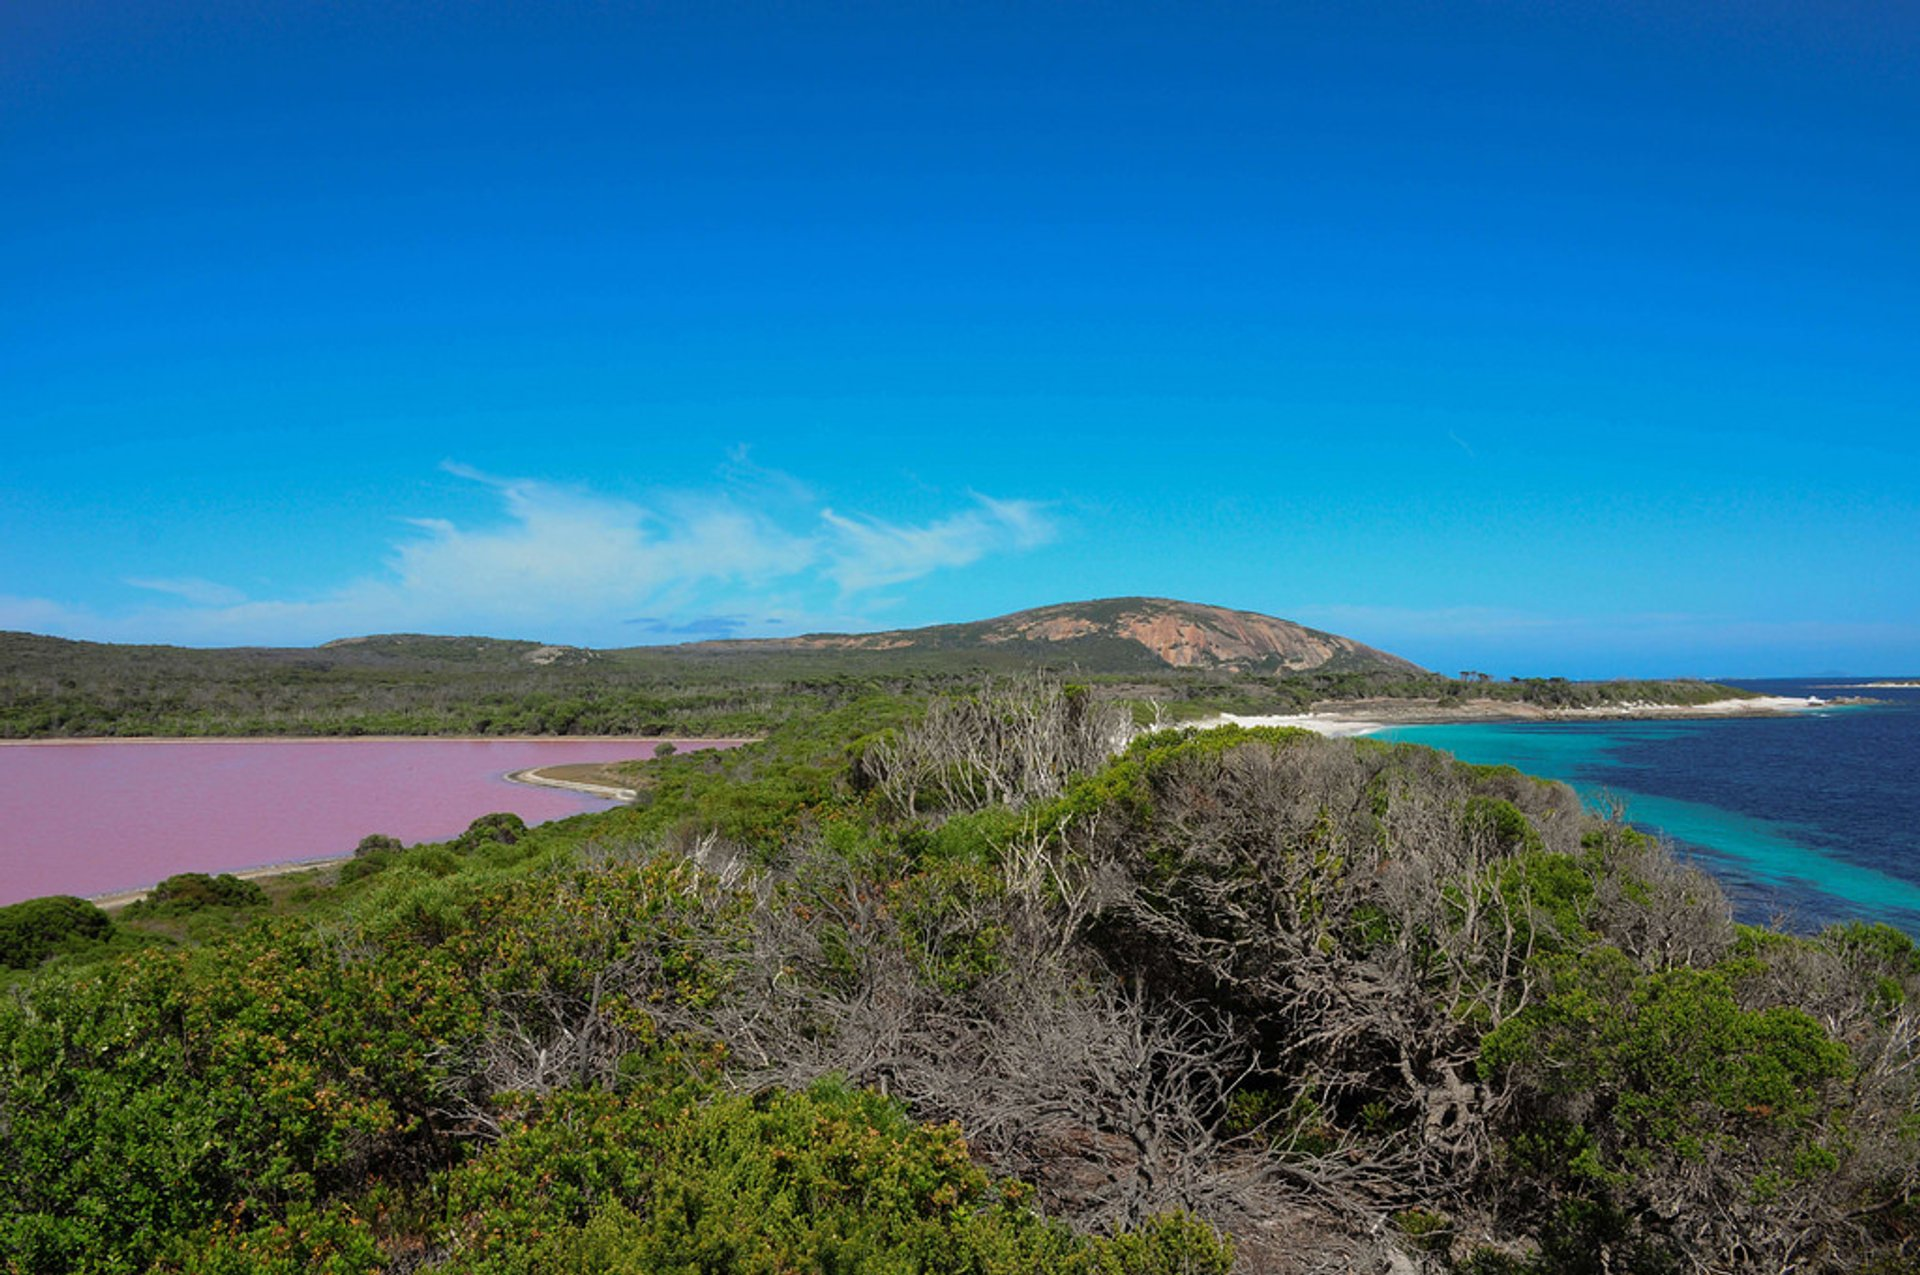 Lake Hillier in Western Australia - Best Season 2019